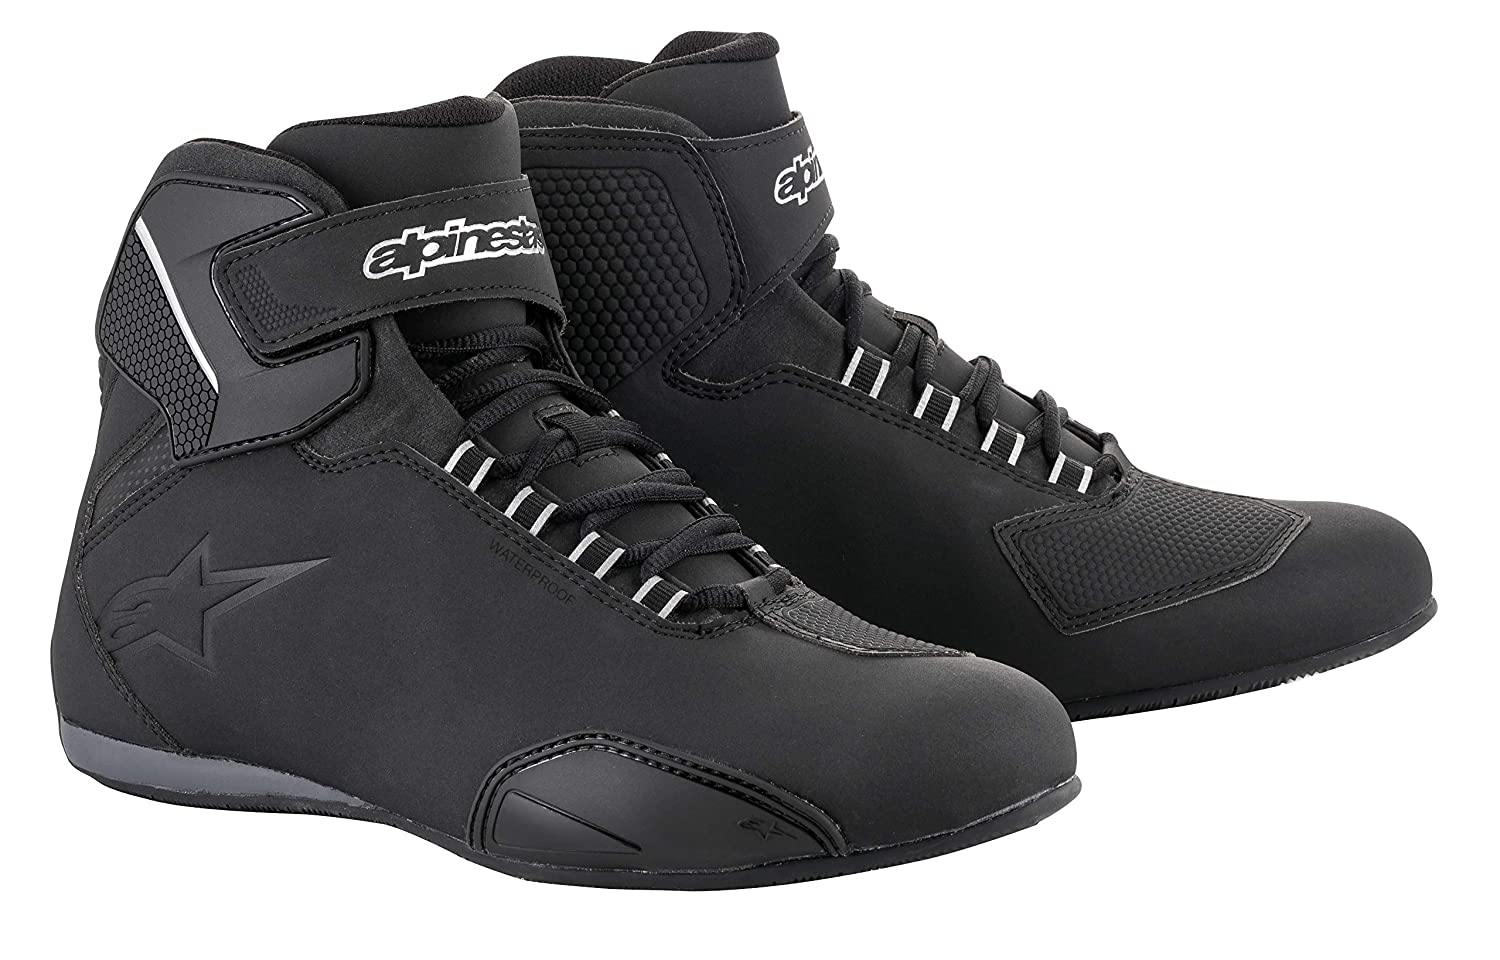 Sektor Wateproof Motorcycle Riding Shoe (10, Black) Alpinestars 3405-1945